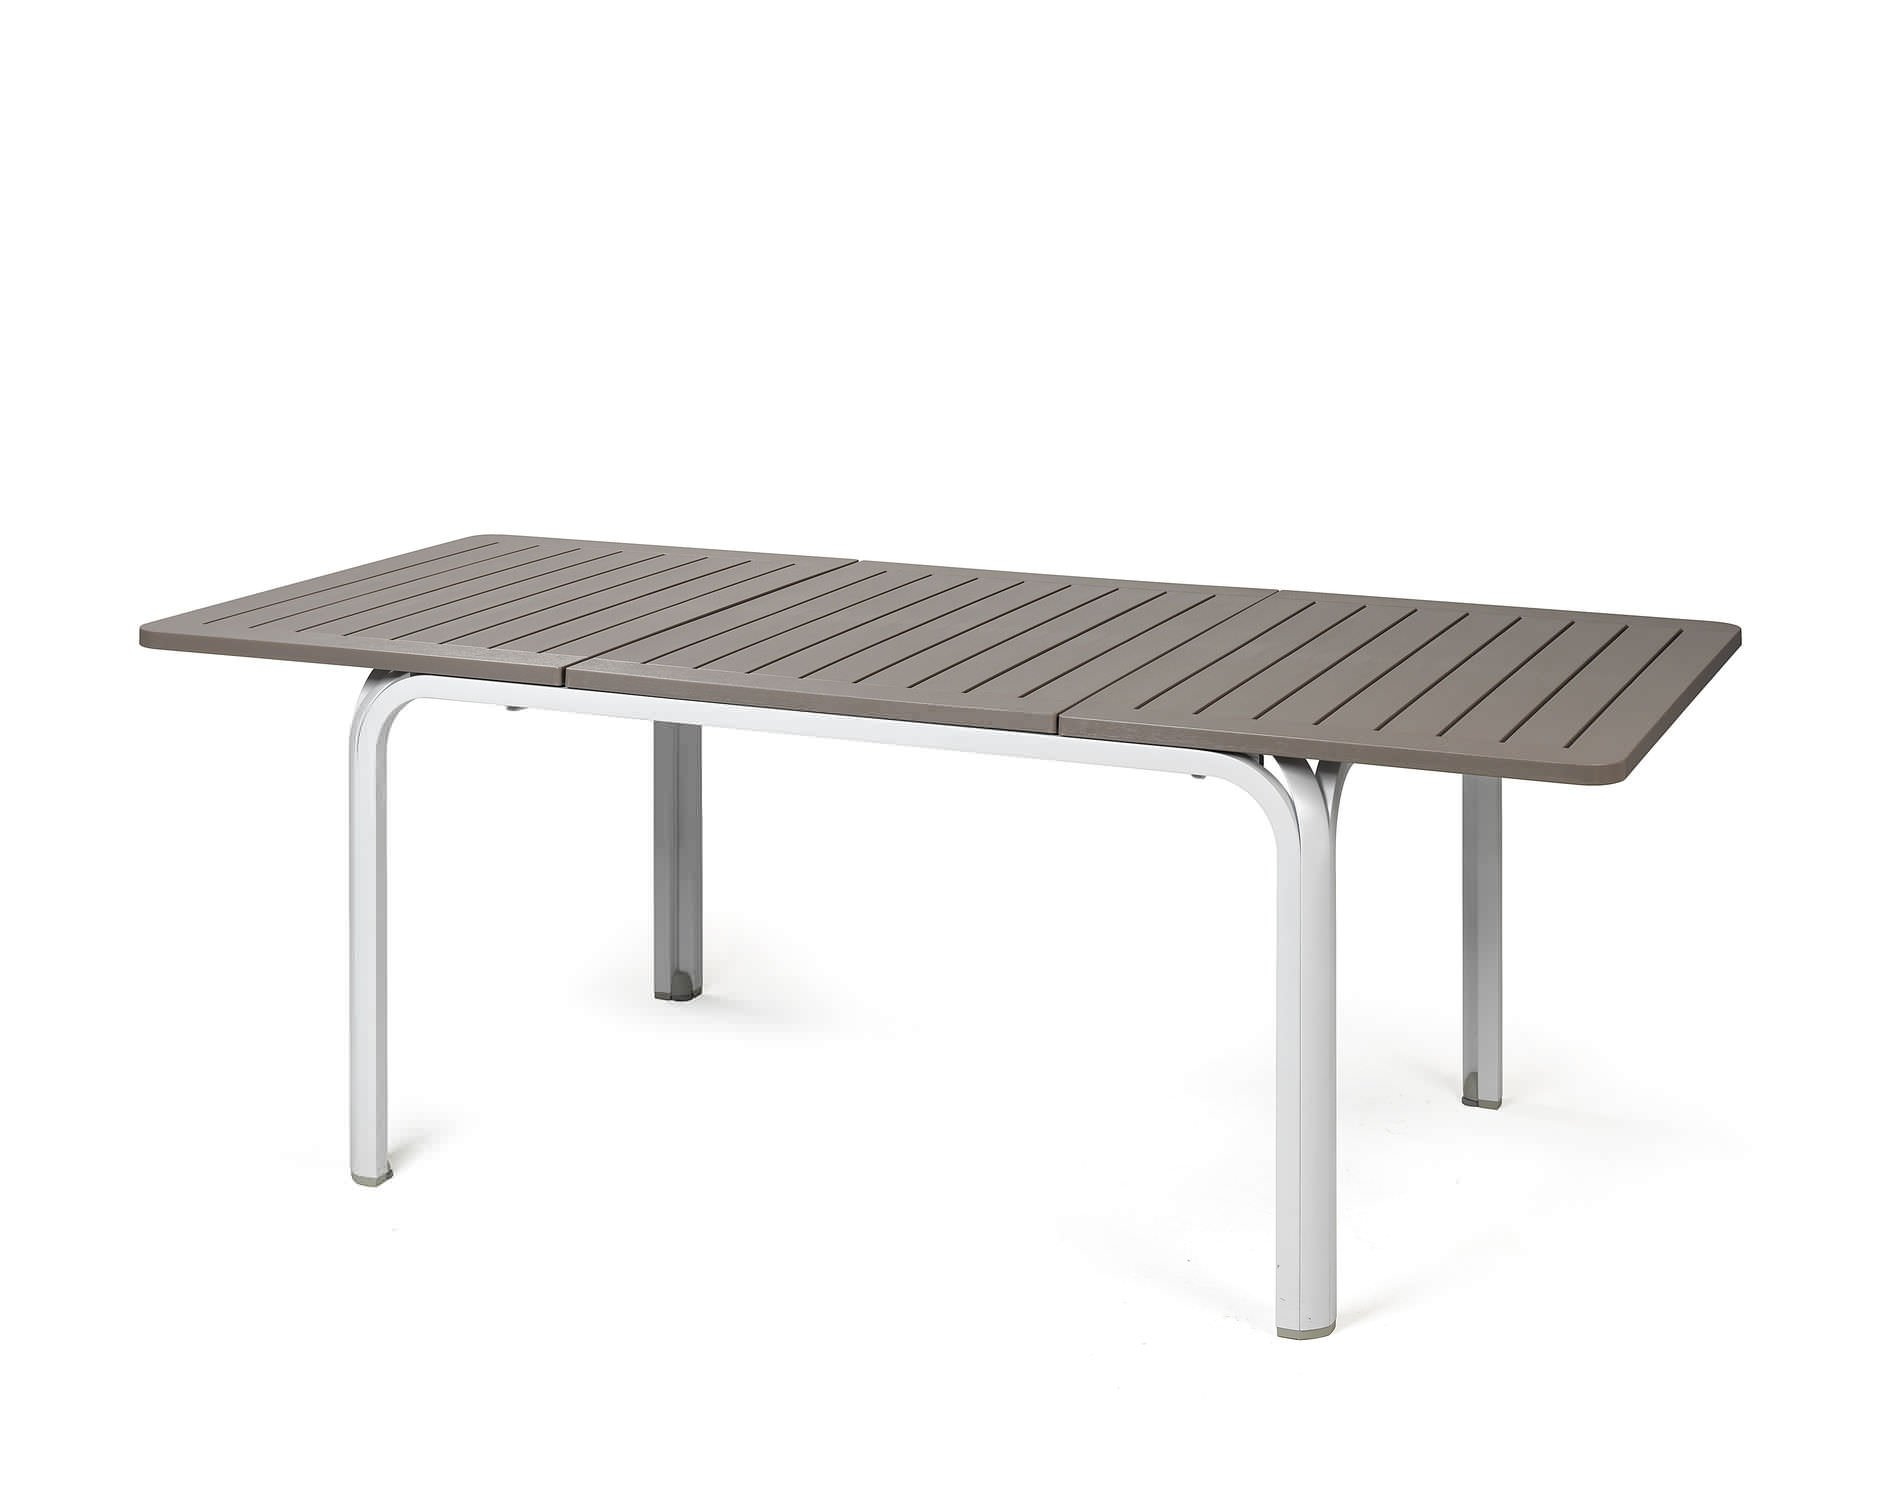 Alloro 140 extendable outdoor dining table bydezign nz ltd for Table extensible 3 suisses